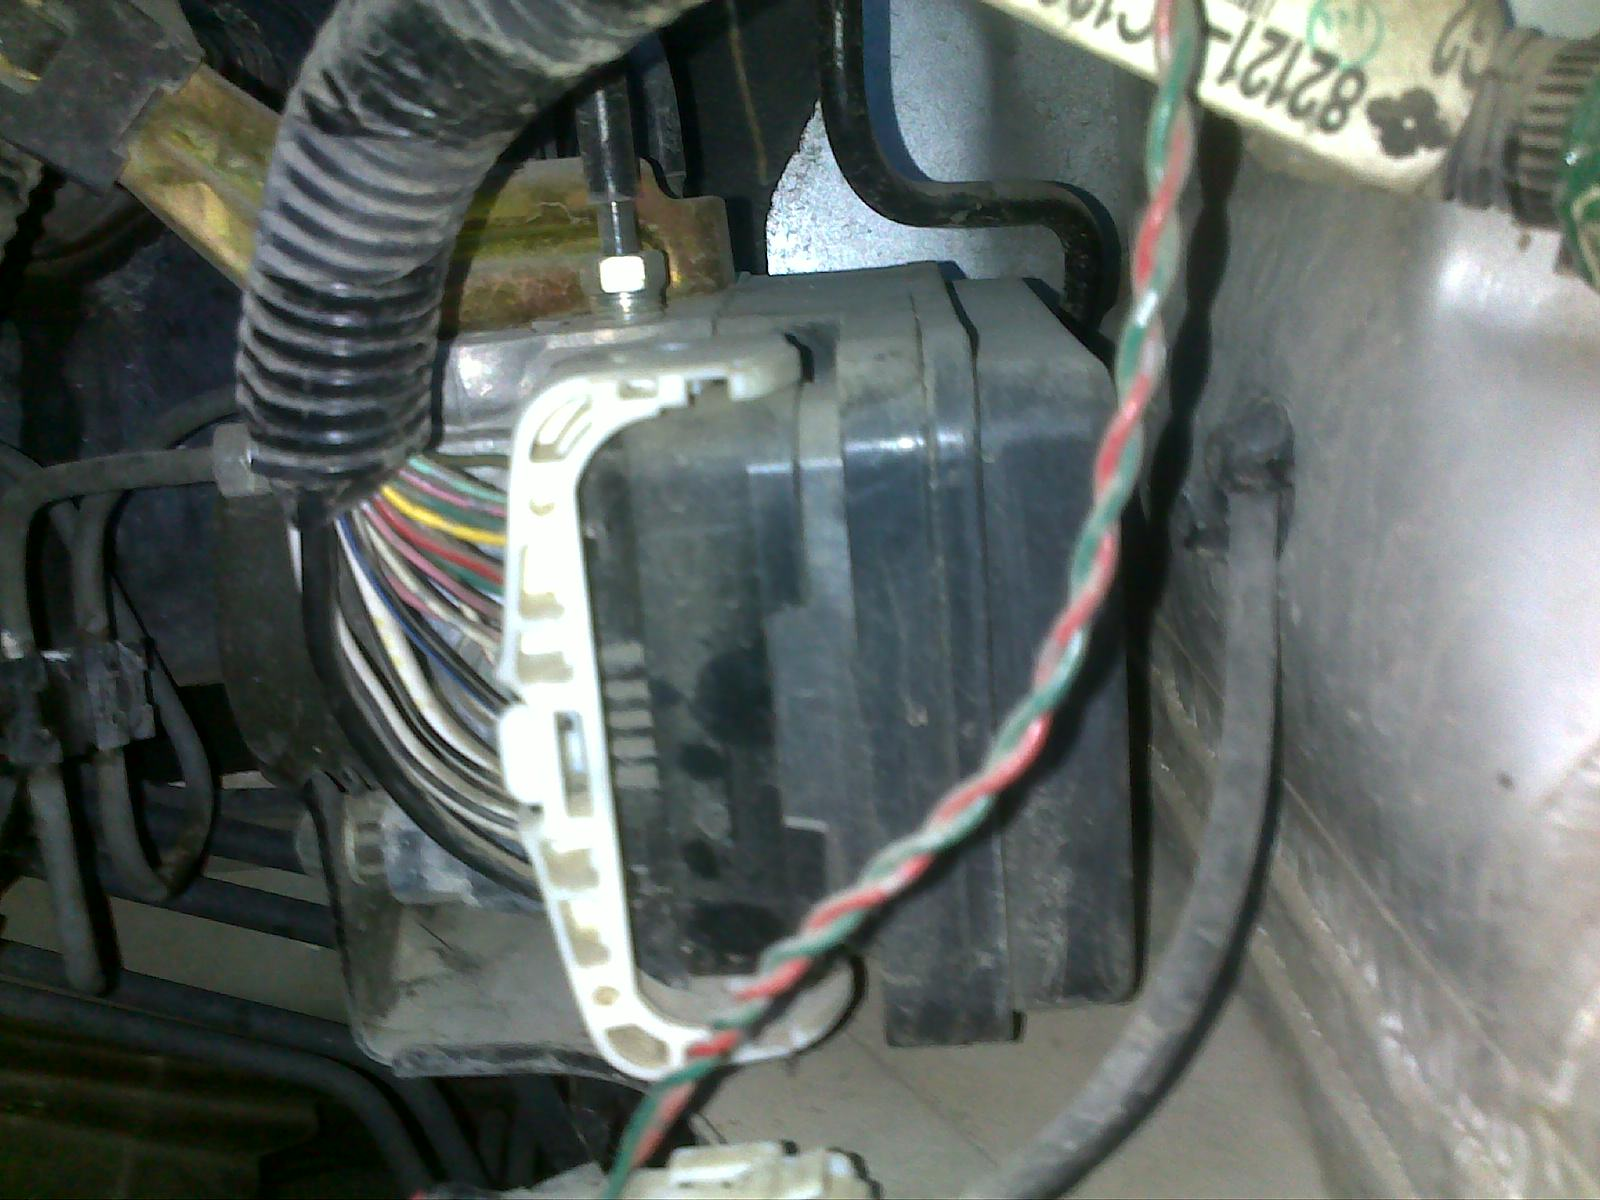 On My 2006 Scion Xa  After I Hooked Up The Battery Nothing Is Working